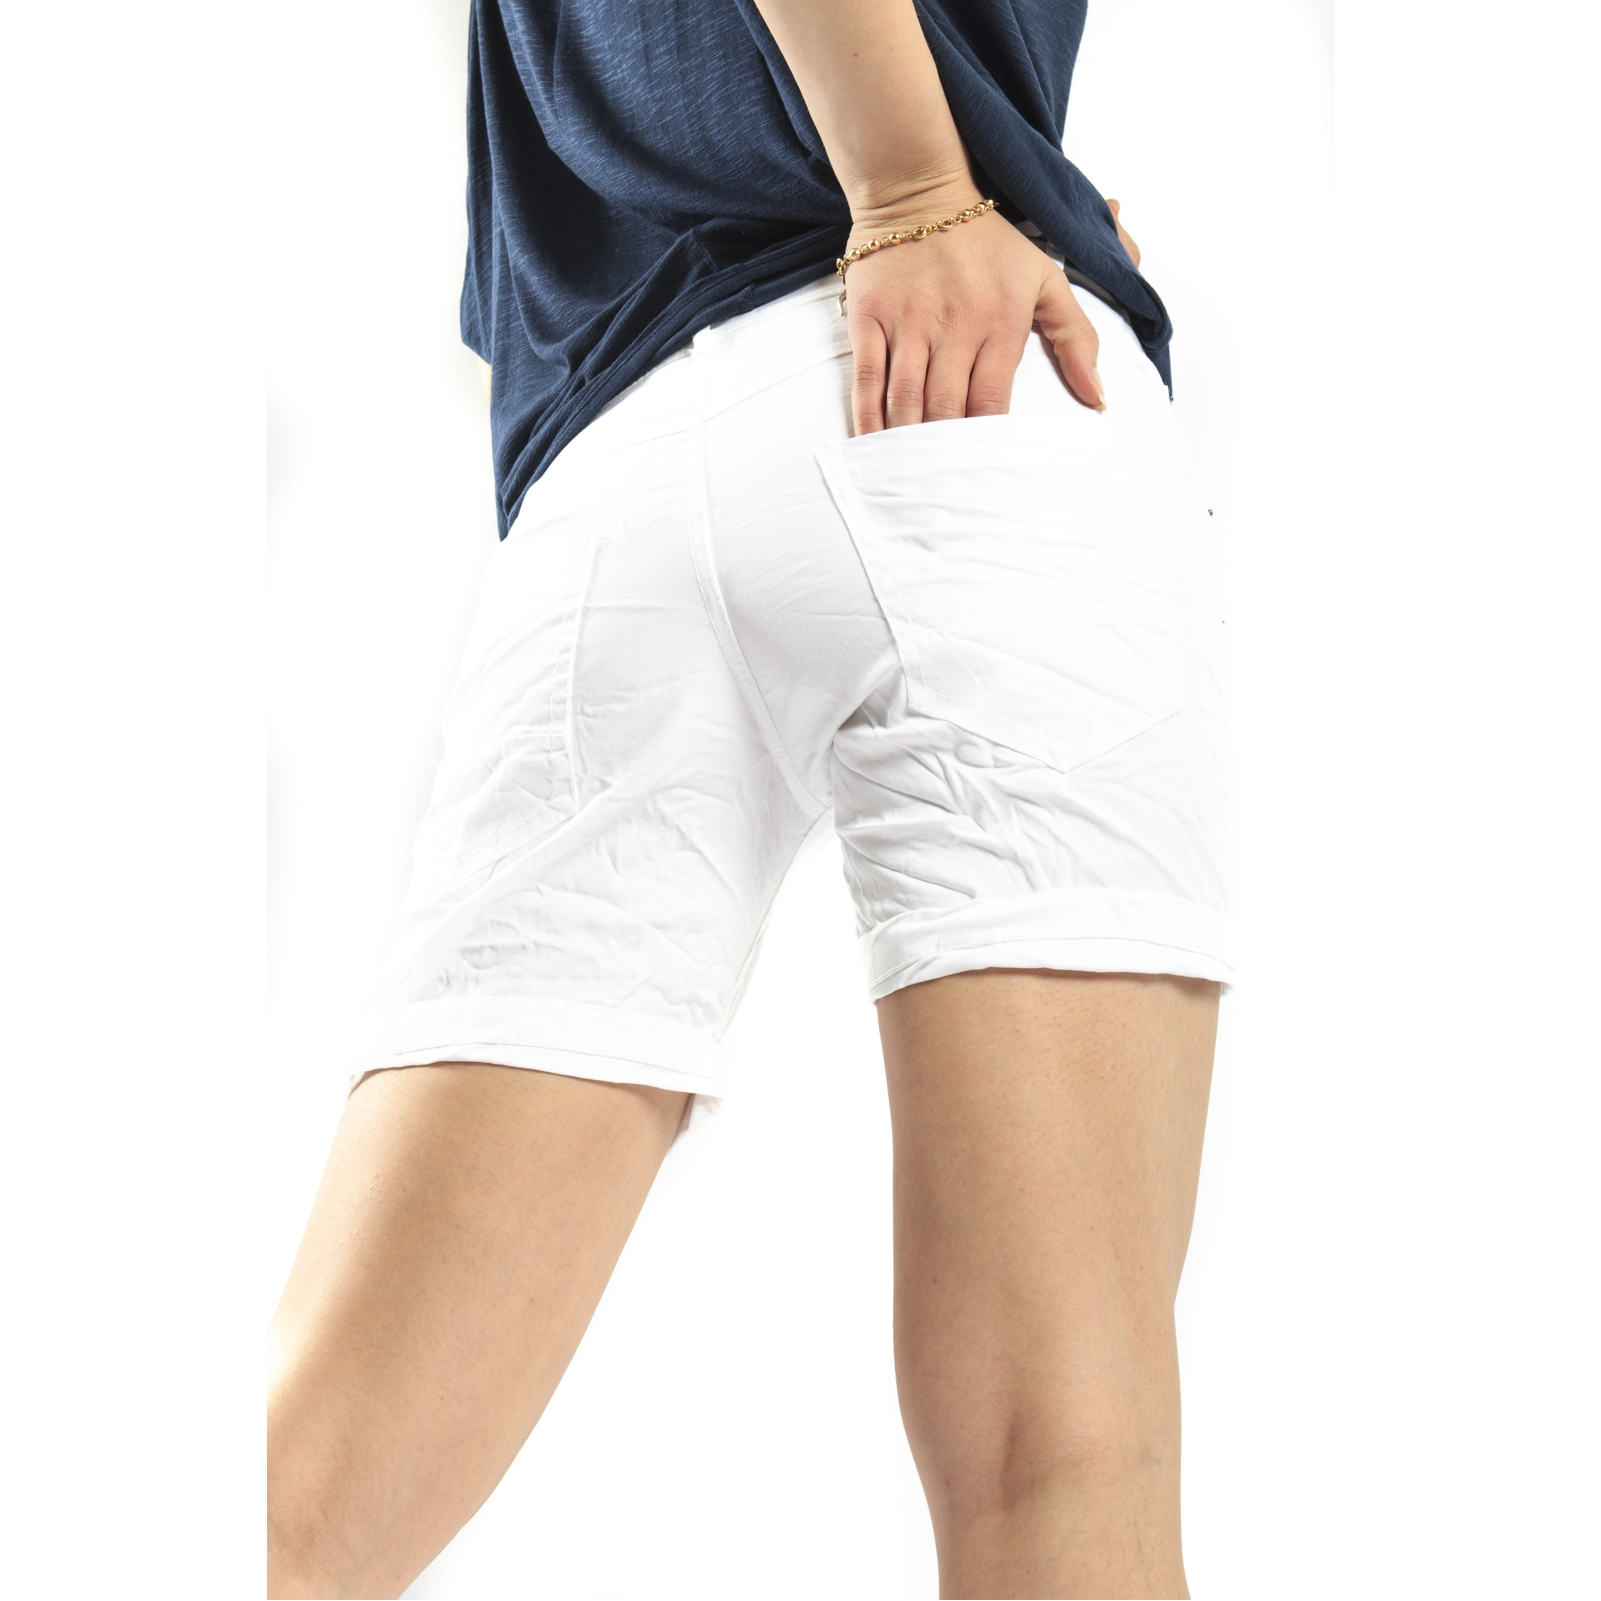 Baggy Cycling Shorts Full-on performance for the trail or just cruisin' around the town. Women's baggy cycling shorts enhance moving comfort, resist scrapes and scuffs, and keep you looking great on .